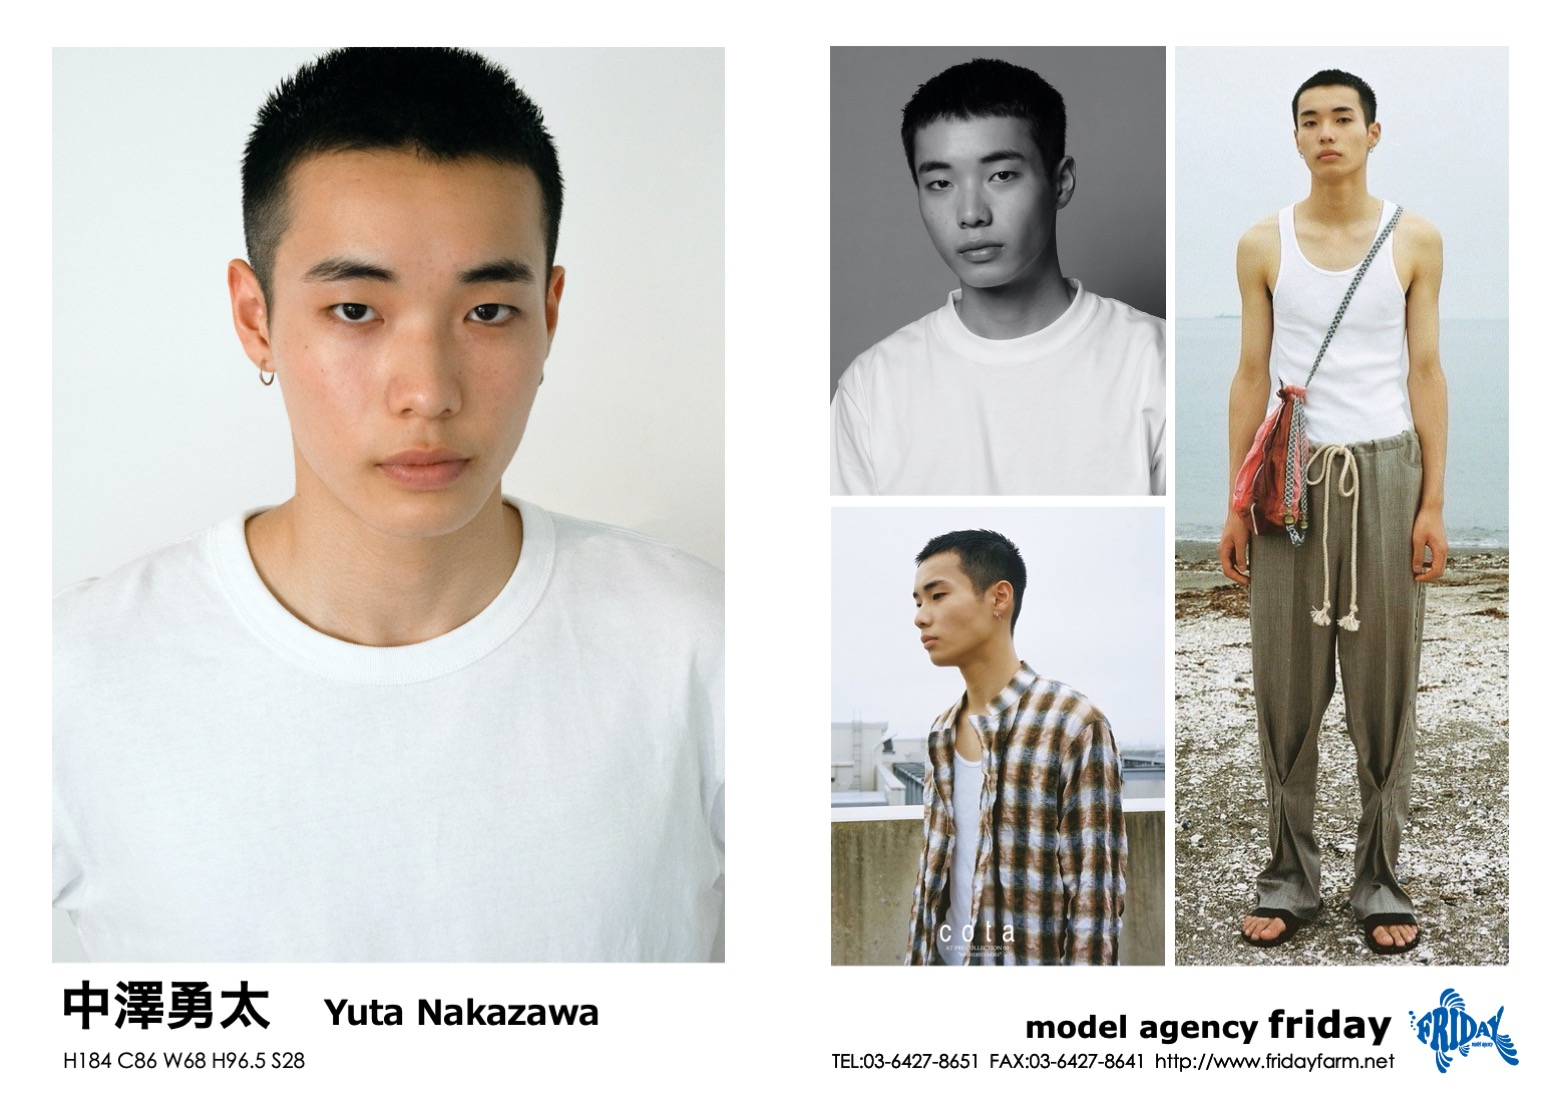 中澤 勇太 - Yuta Nakazawa | model agency friday